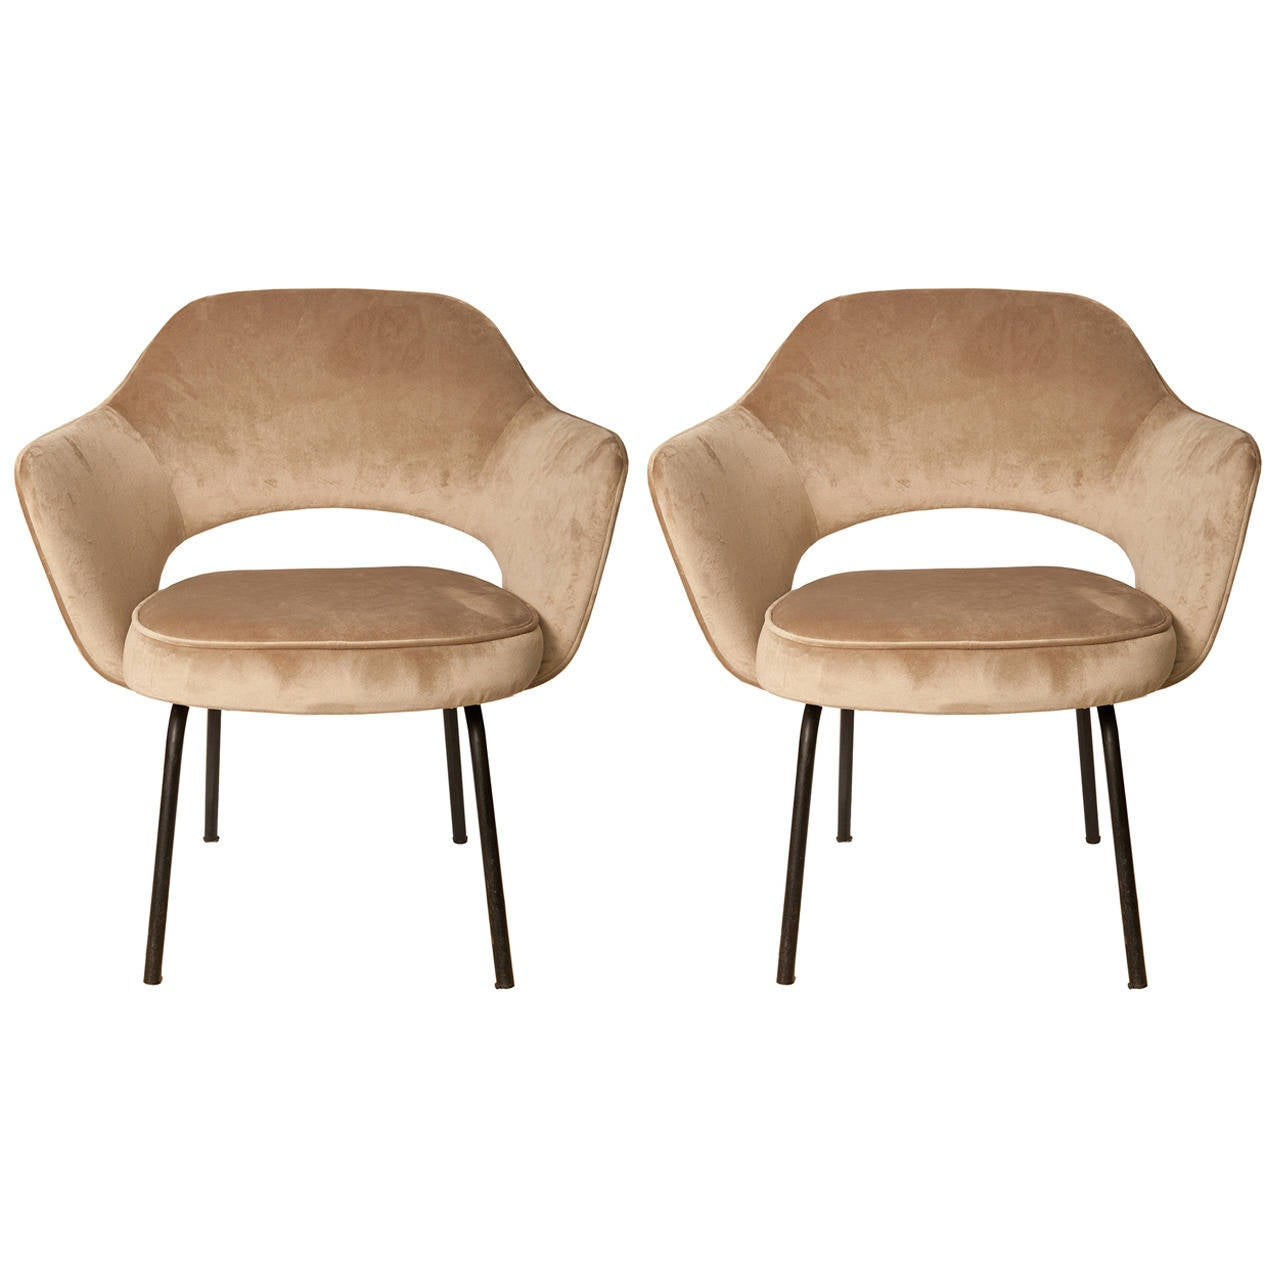 this mid century danish modern style chairs is no longer available